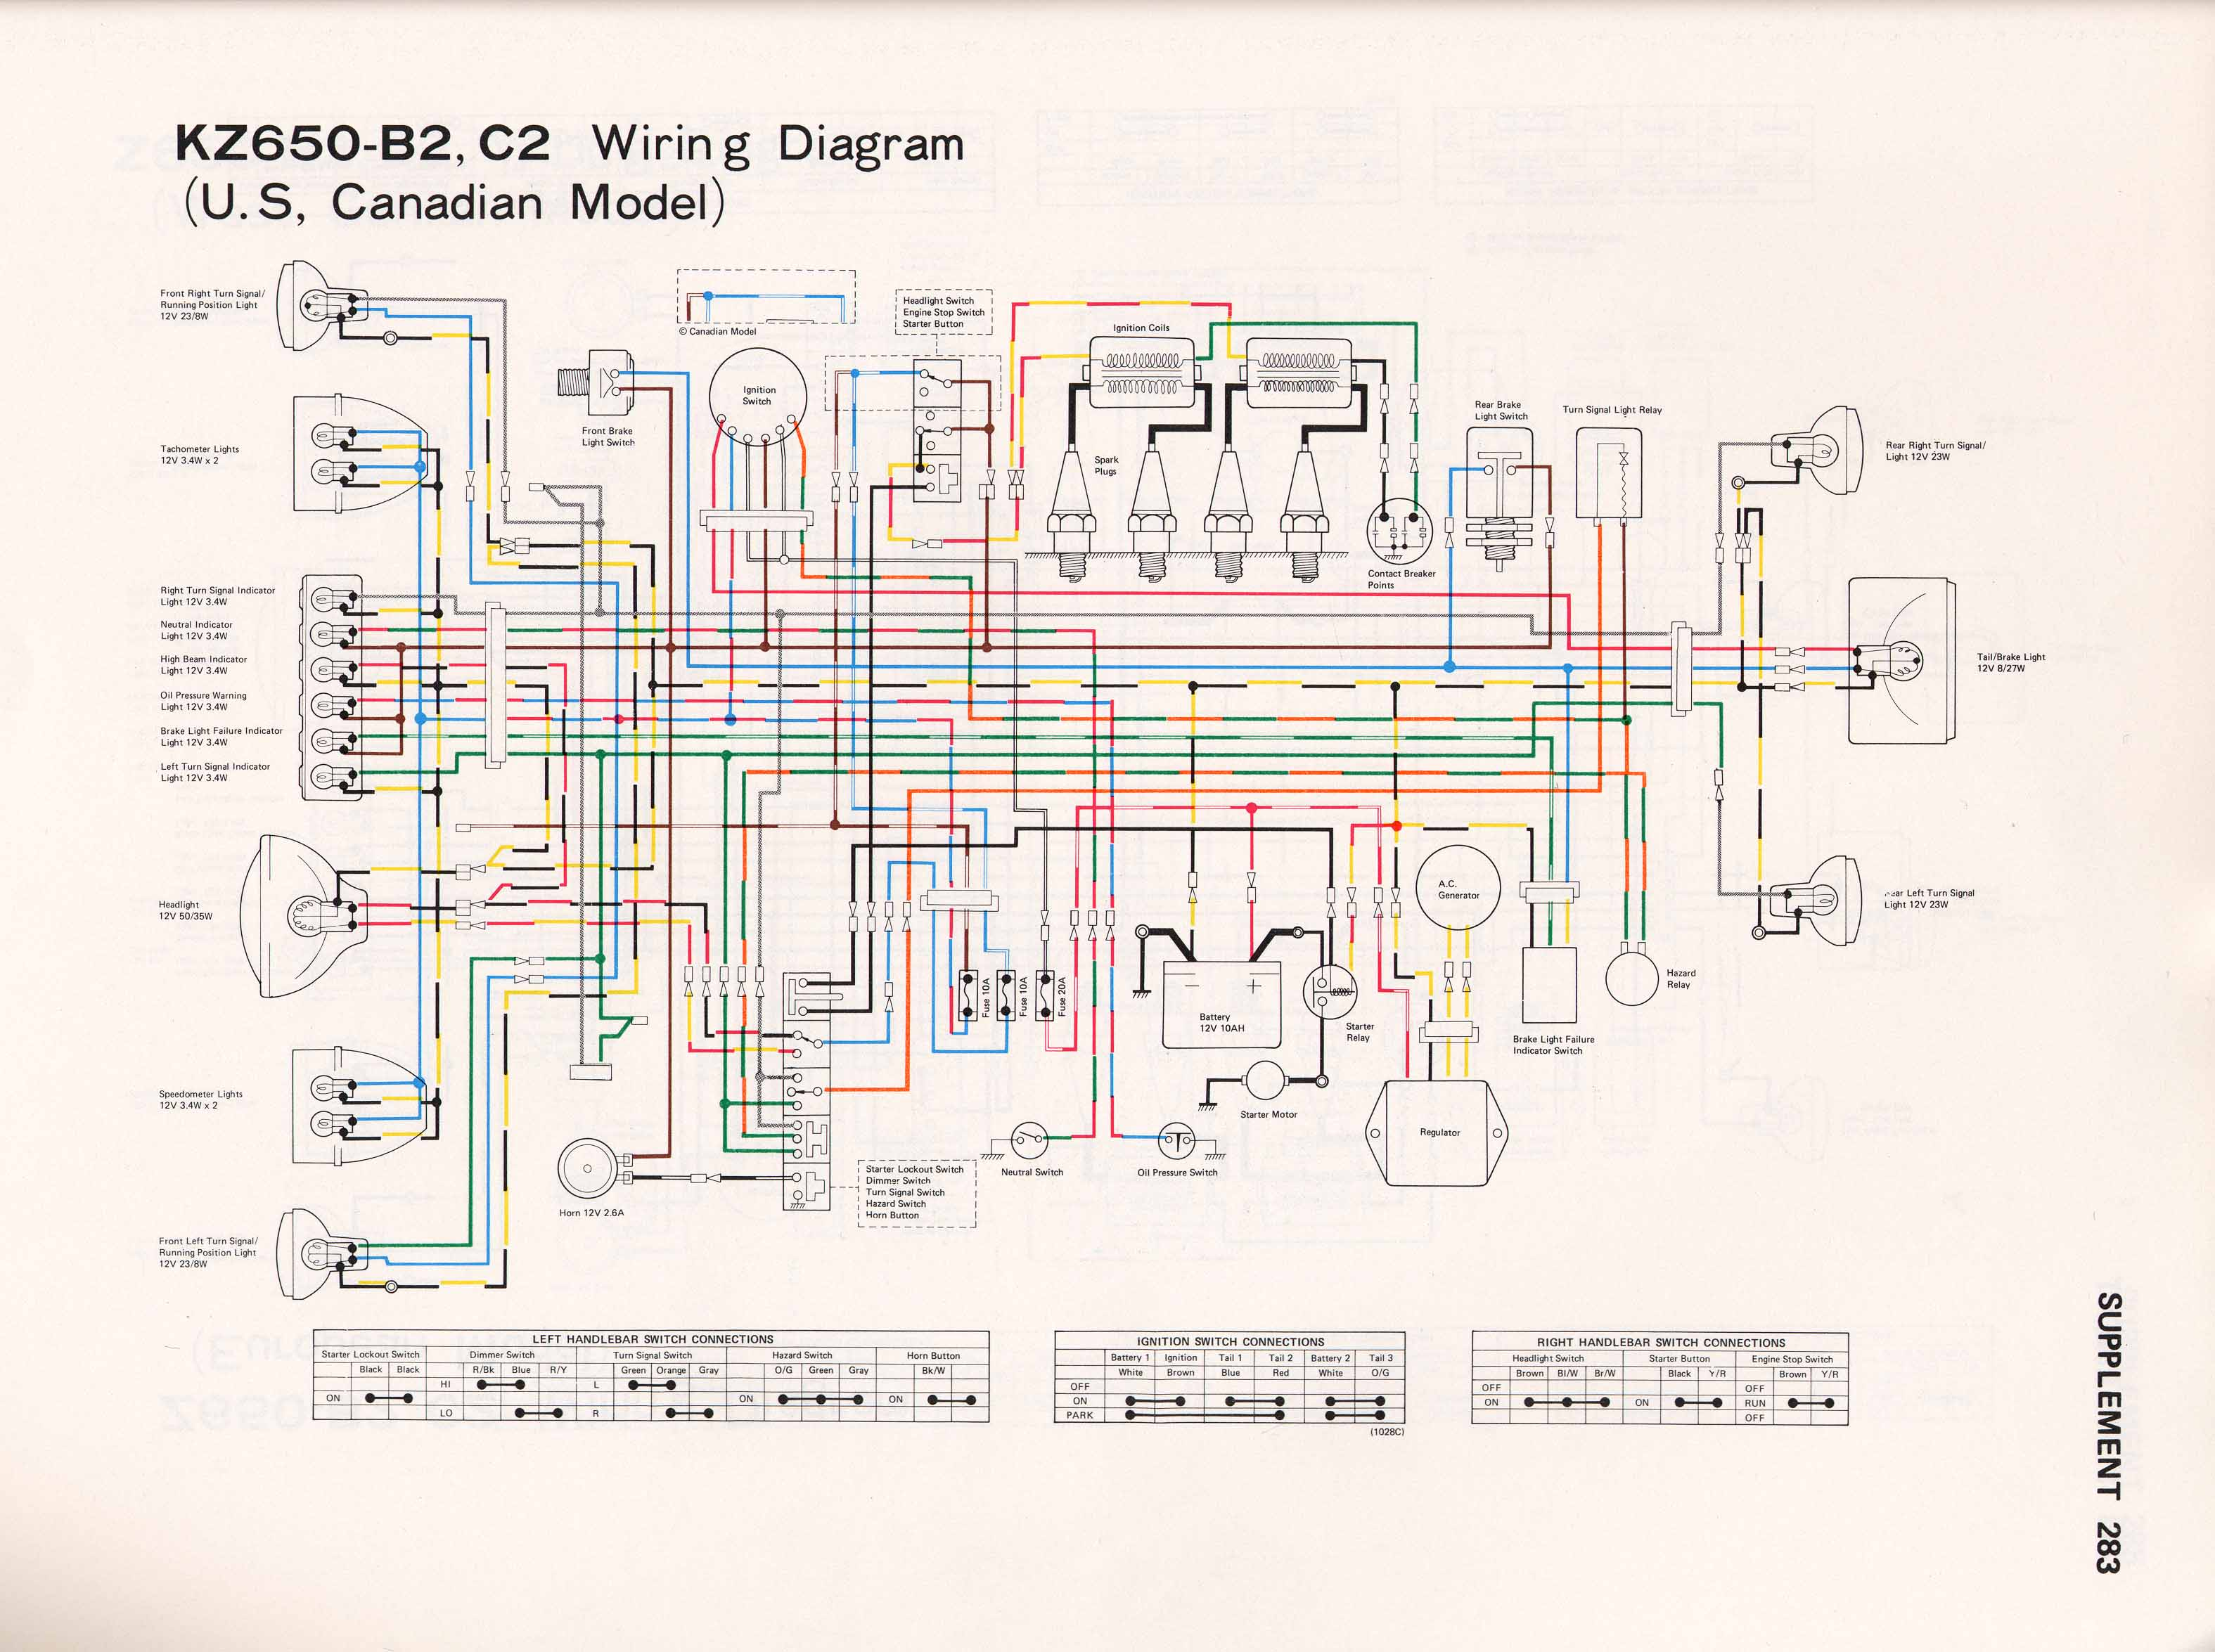 http://diagrams kz650 info/wiring/images/kz650-